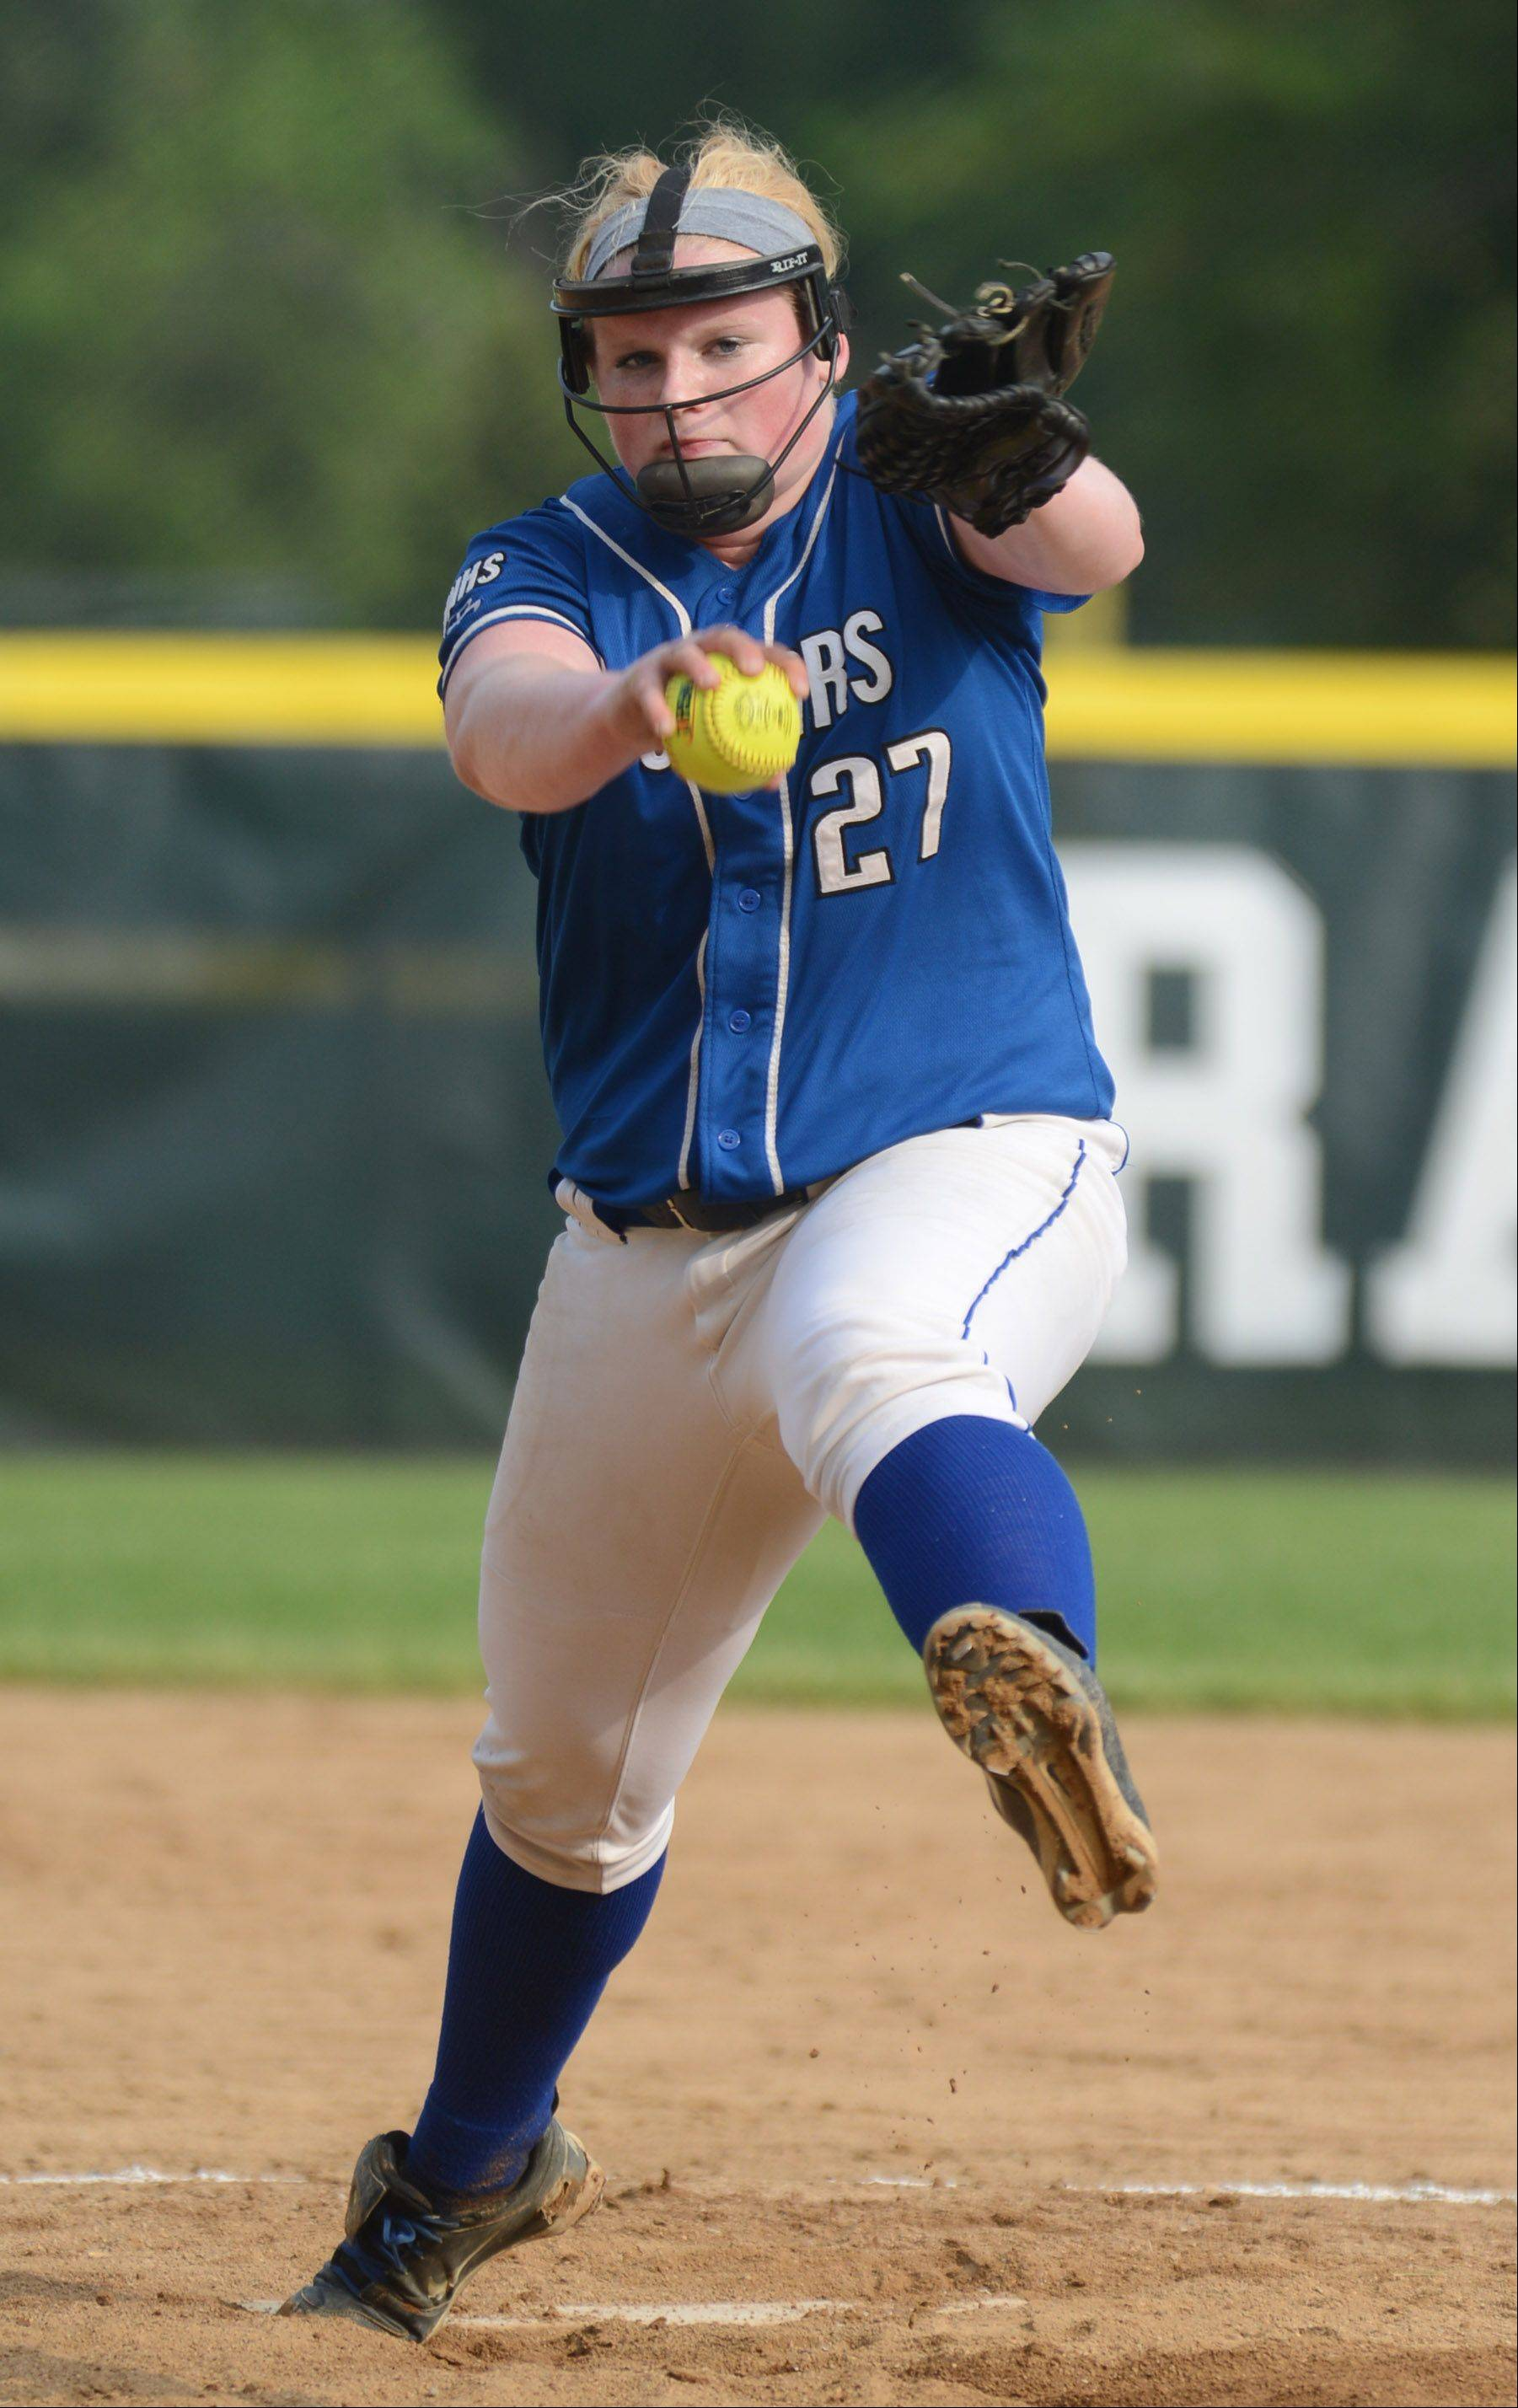 Vernon Hills' pitcher Jen Claussen fires to a Northside Prep batter during Tuesday's Class 3A sectional semifinal game in Grayslake.